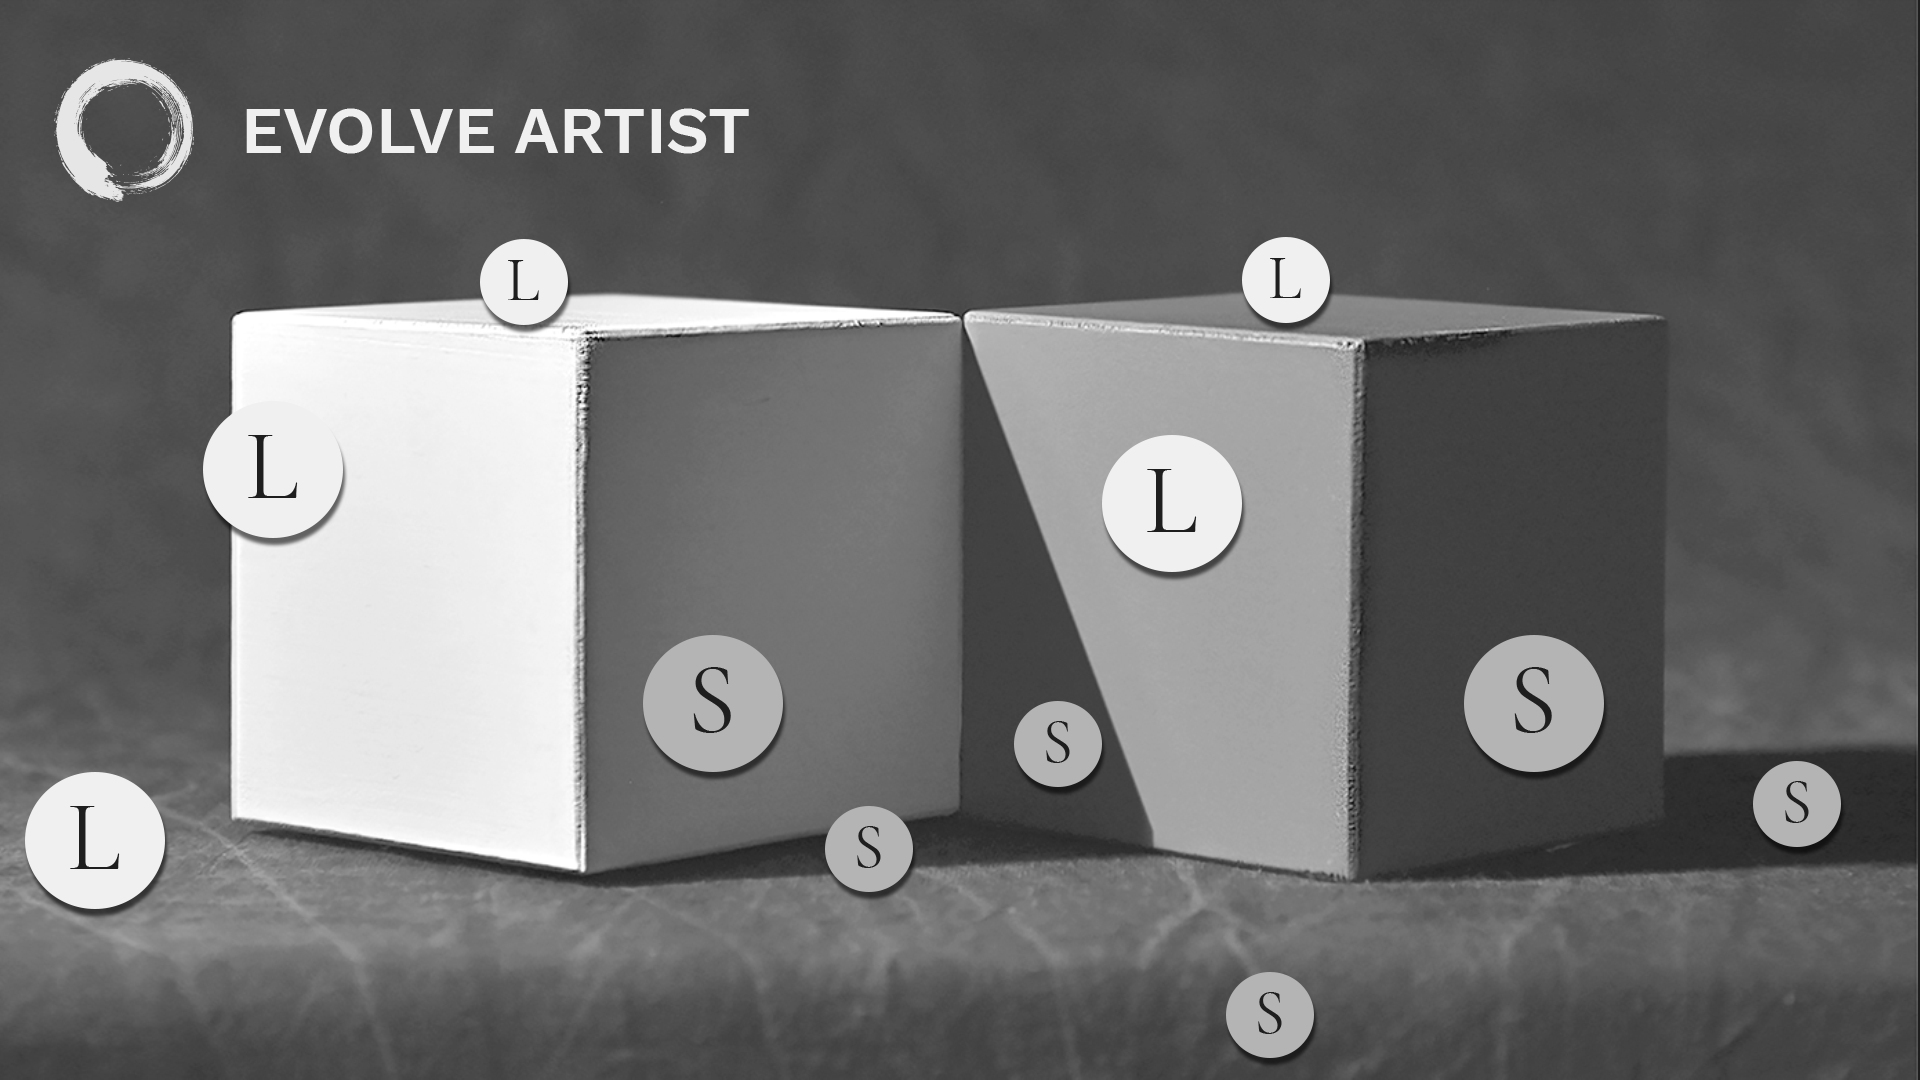 Values in image of two cubes simplified using shadows and lights